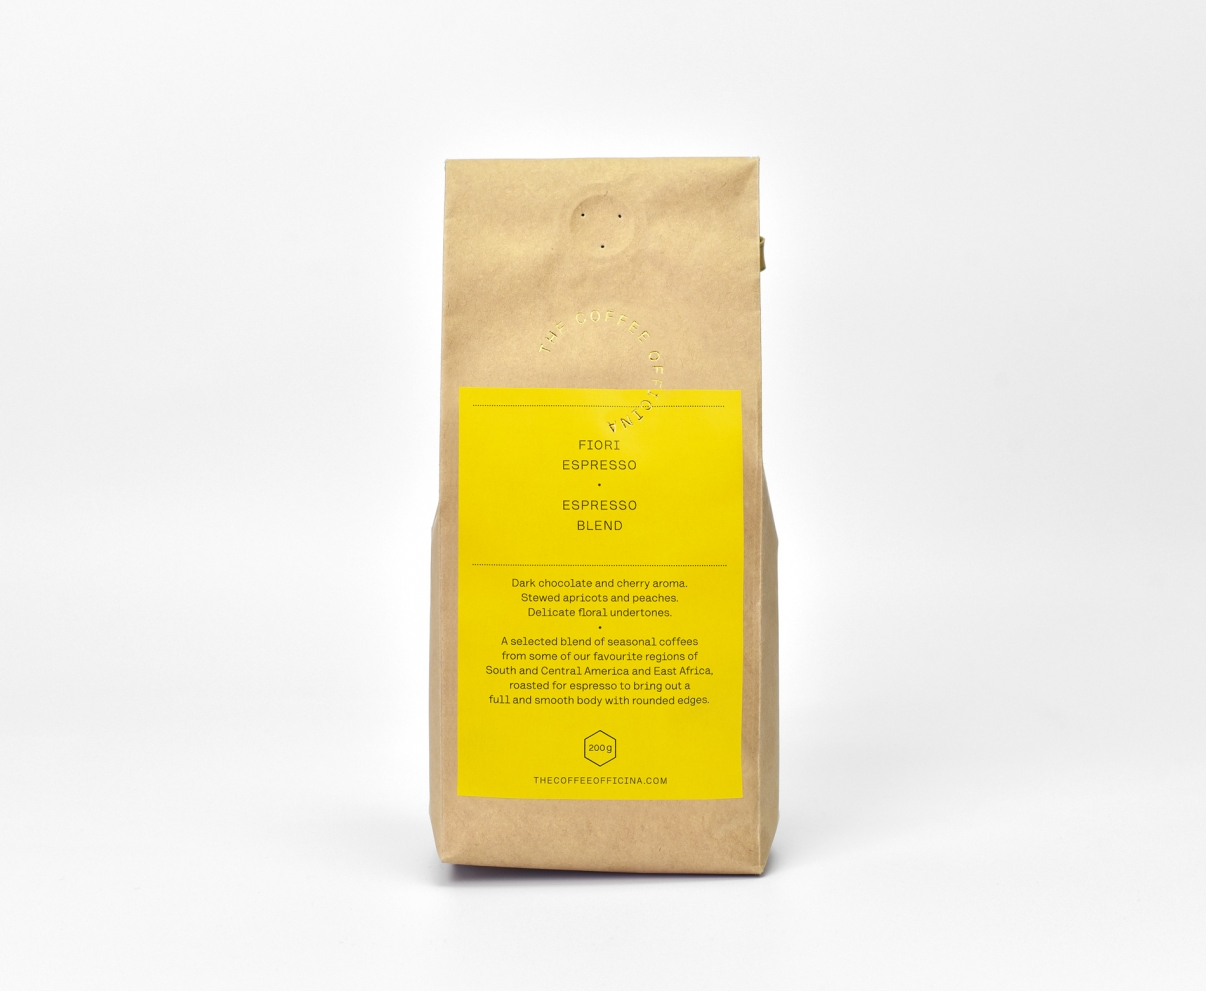 The Coffee Officina Fiori Espresso Blend